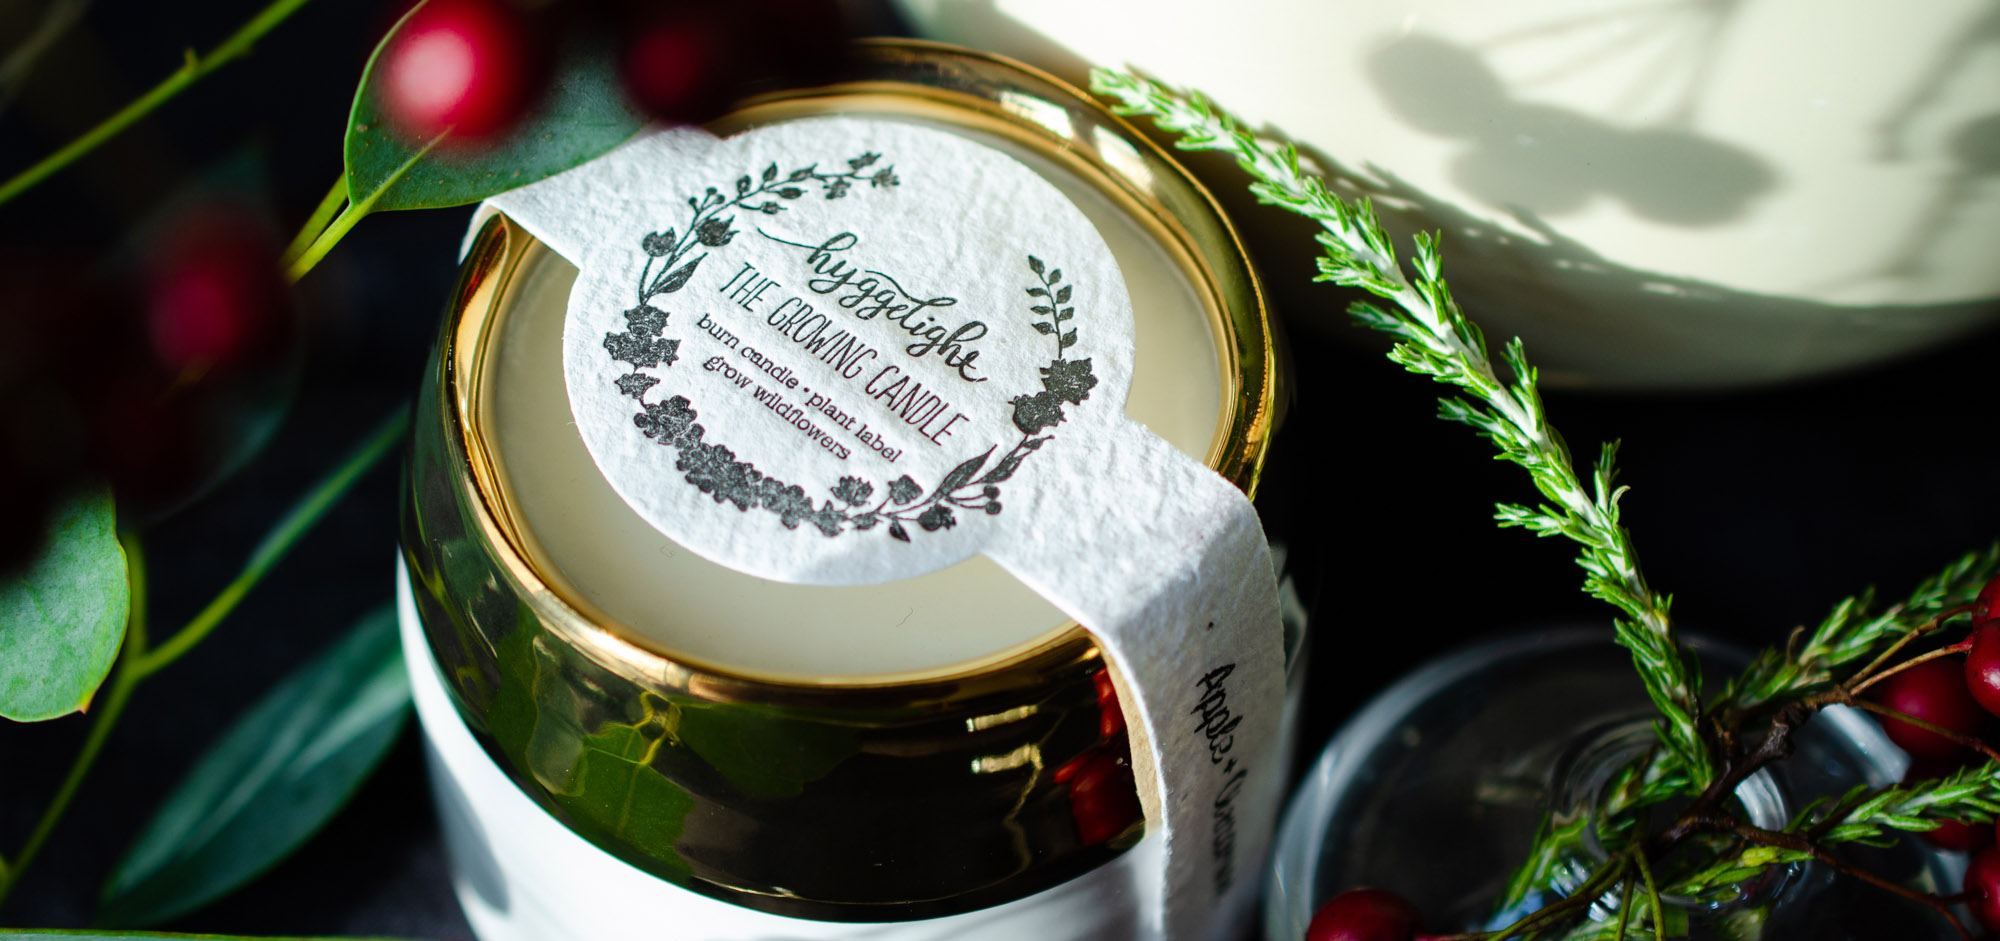 Shop small beauty stores with Live in the Light and this Hyggelight candle